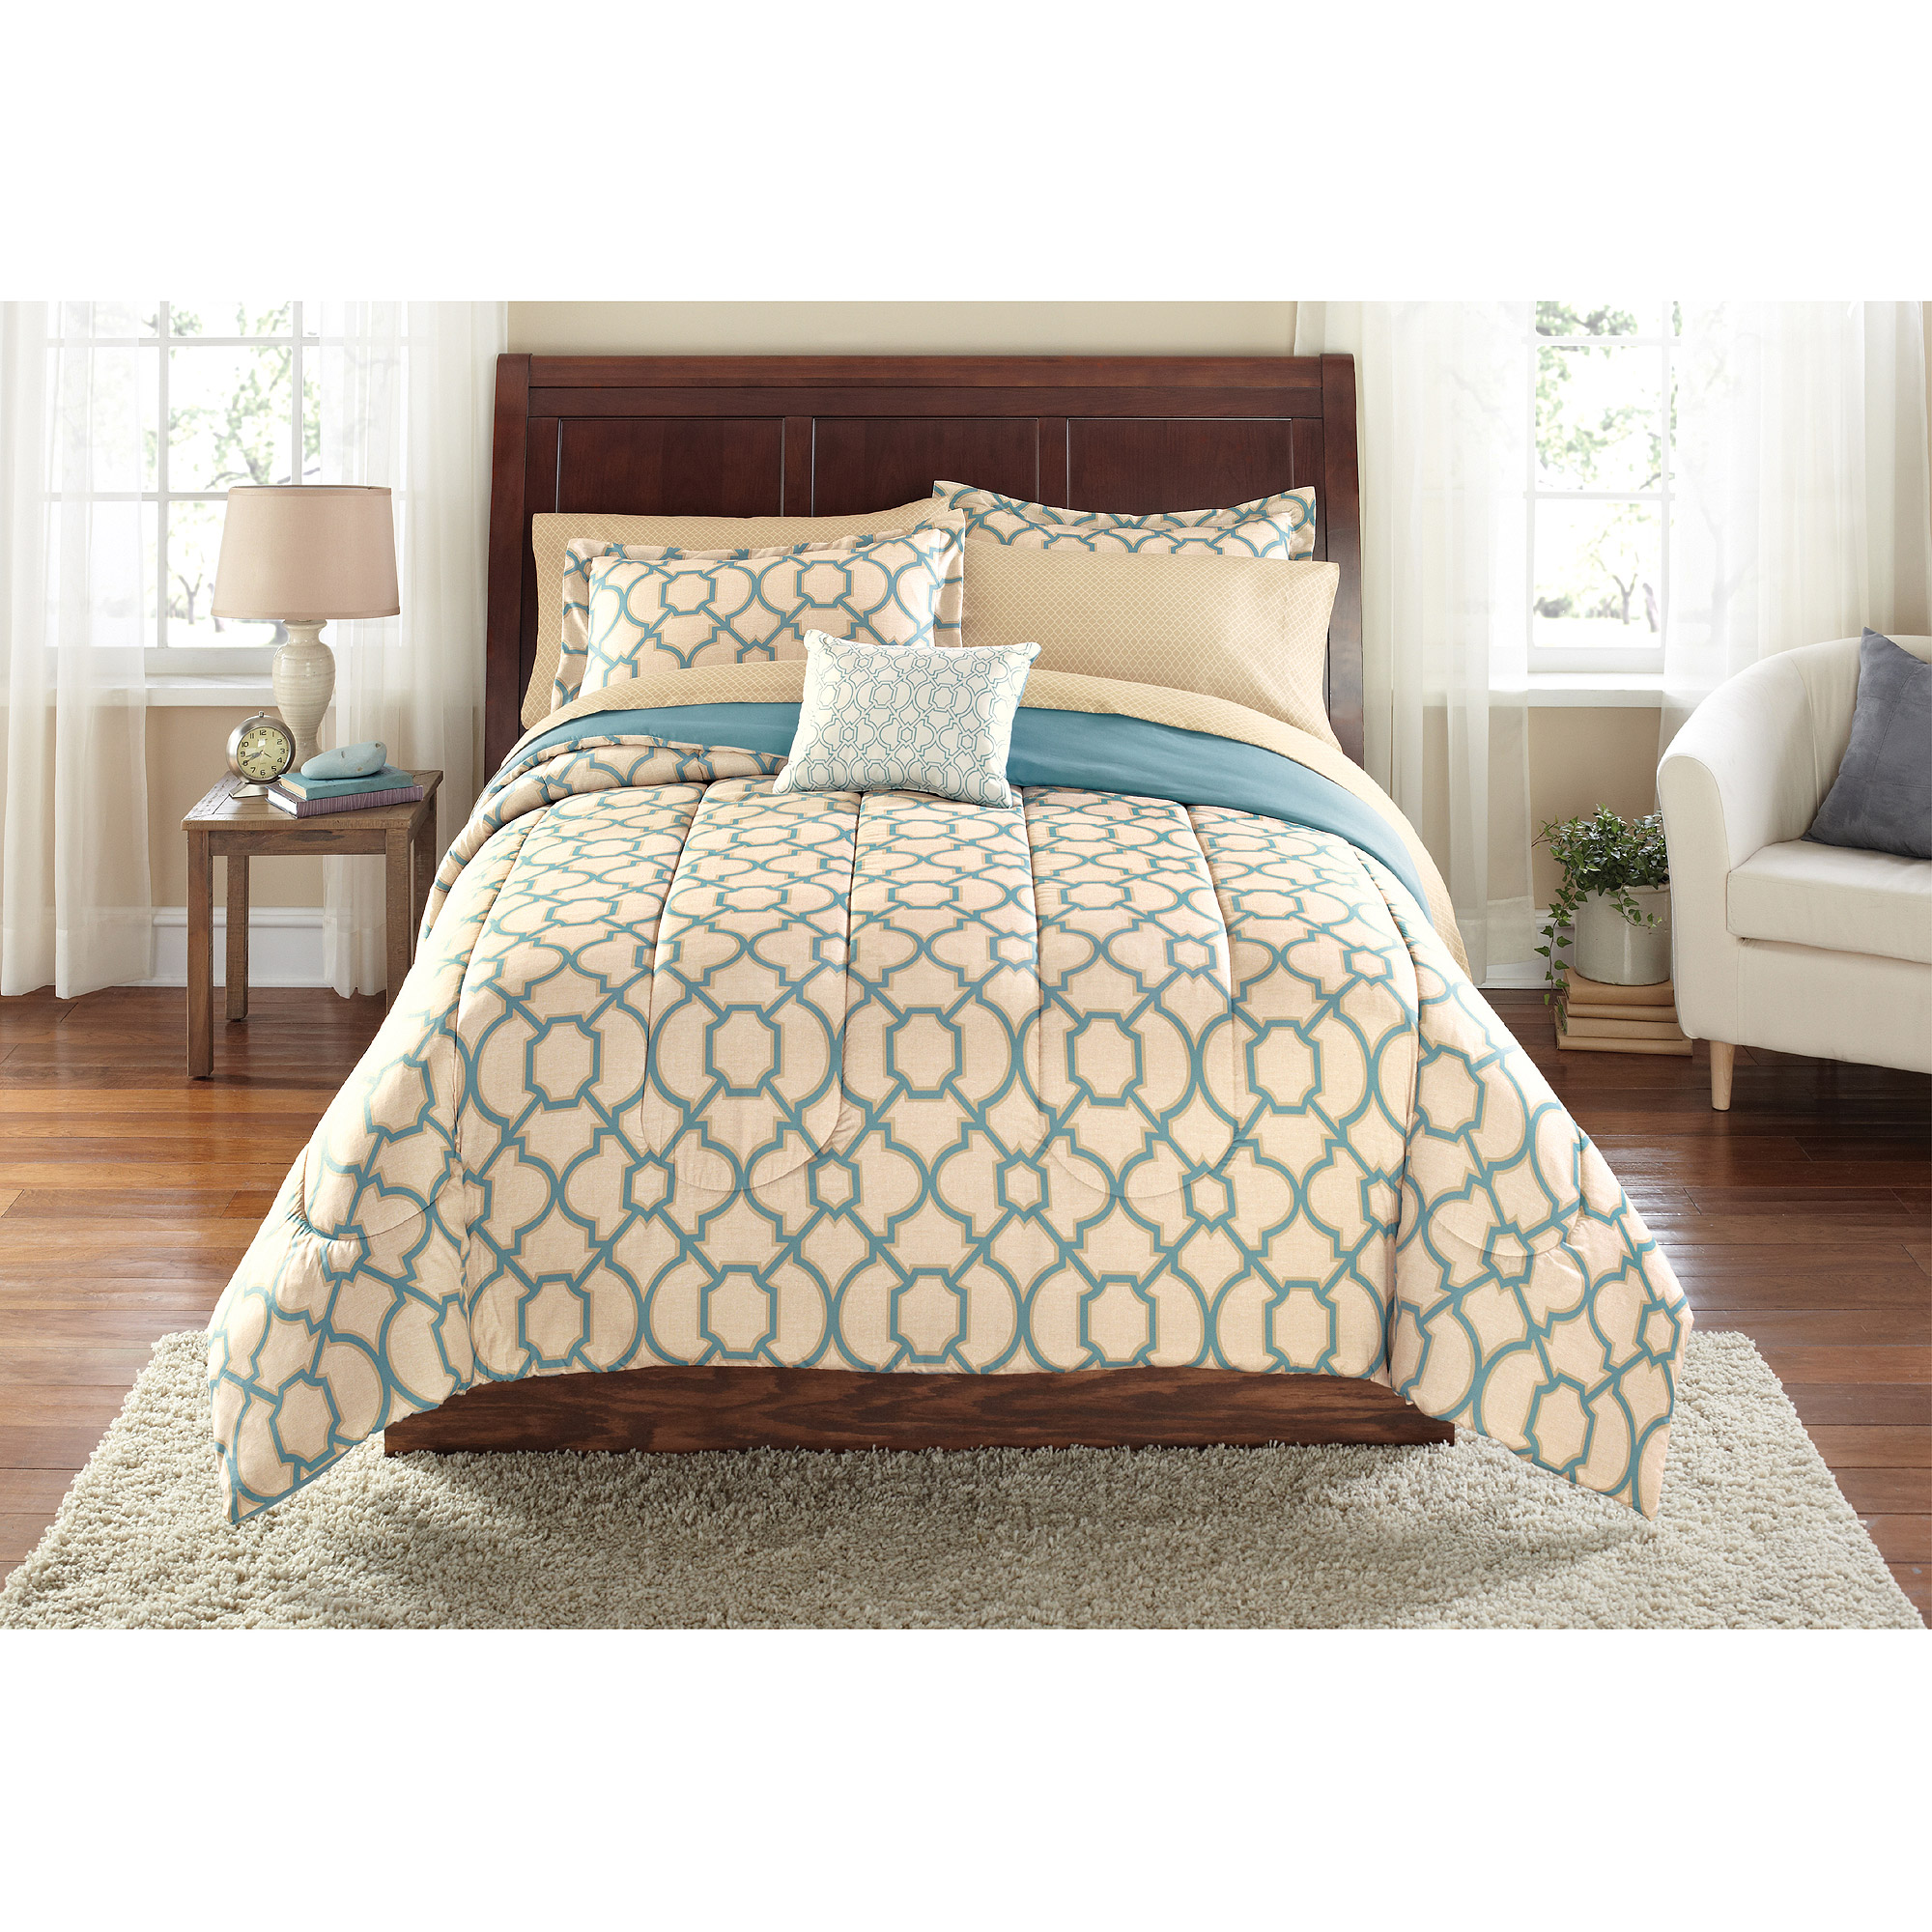 Mainstays Bed in a Bag Fretwork Bedding Set Walmart